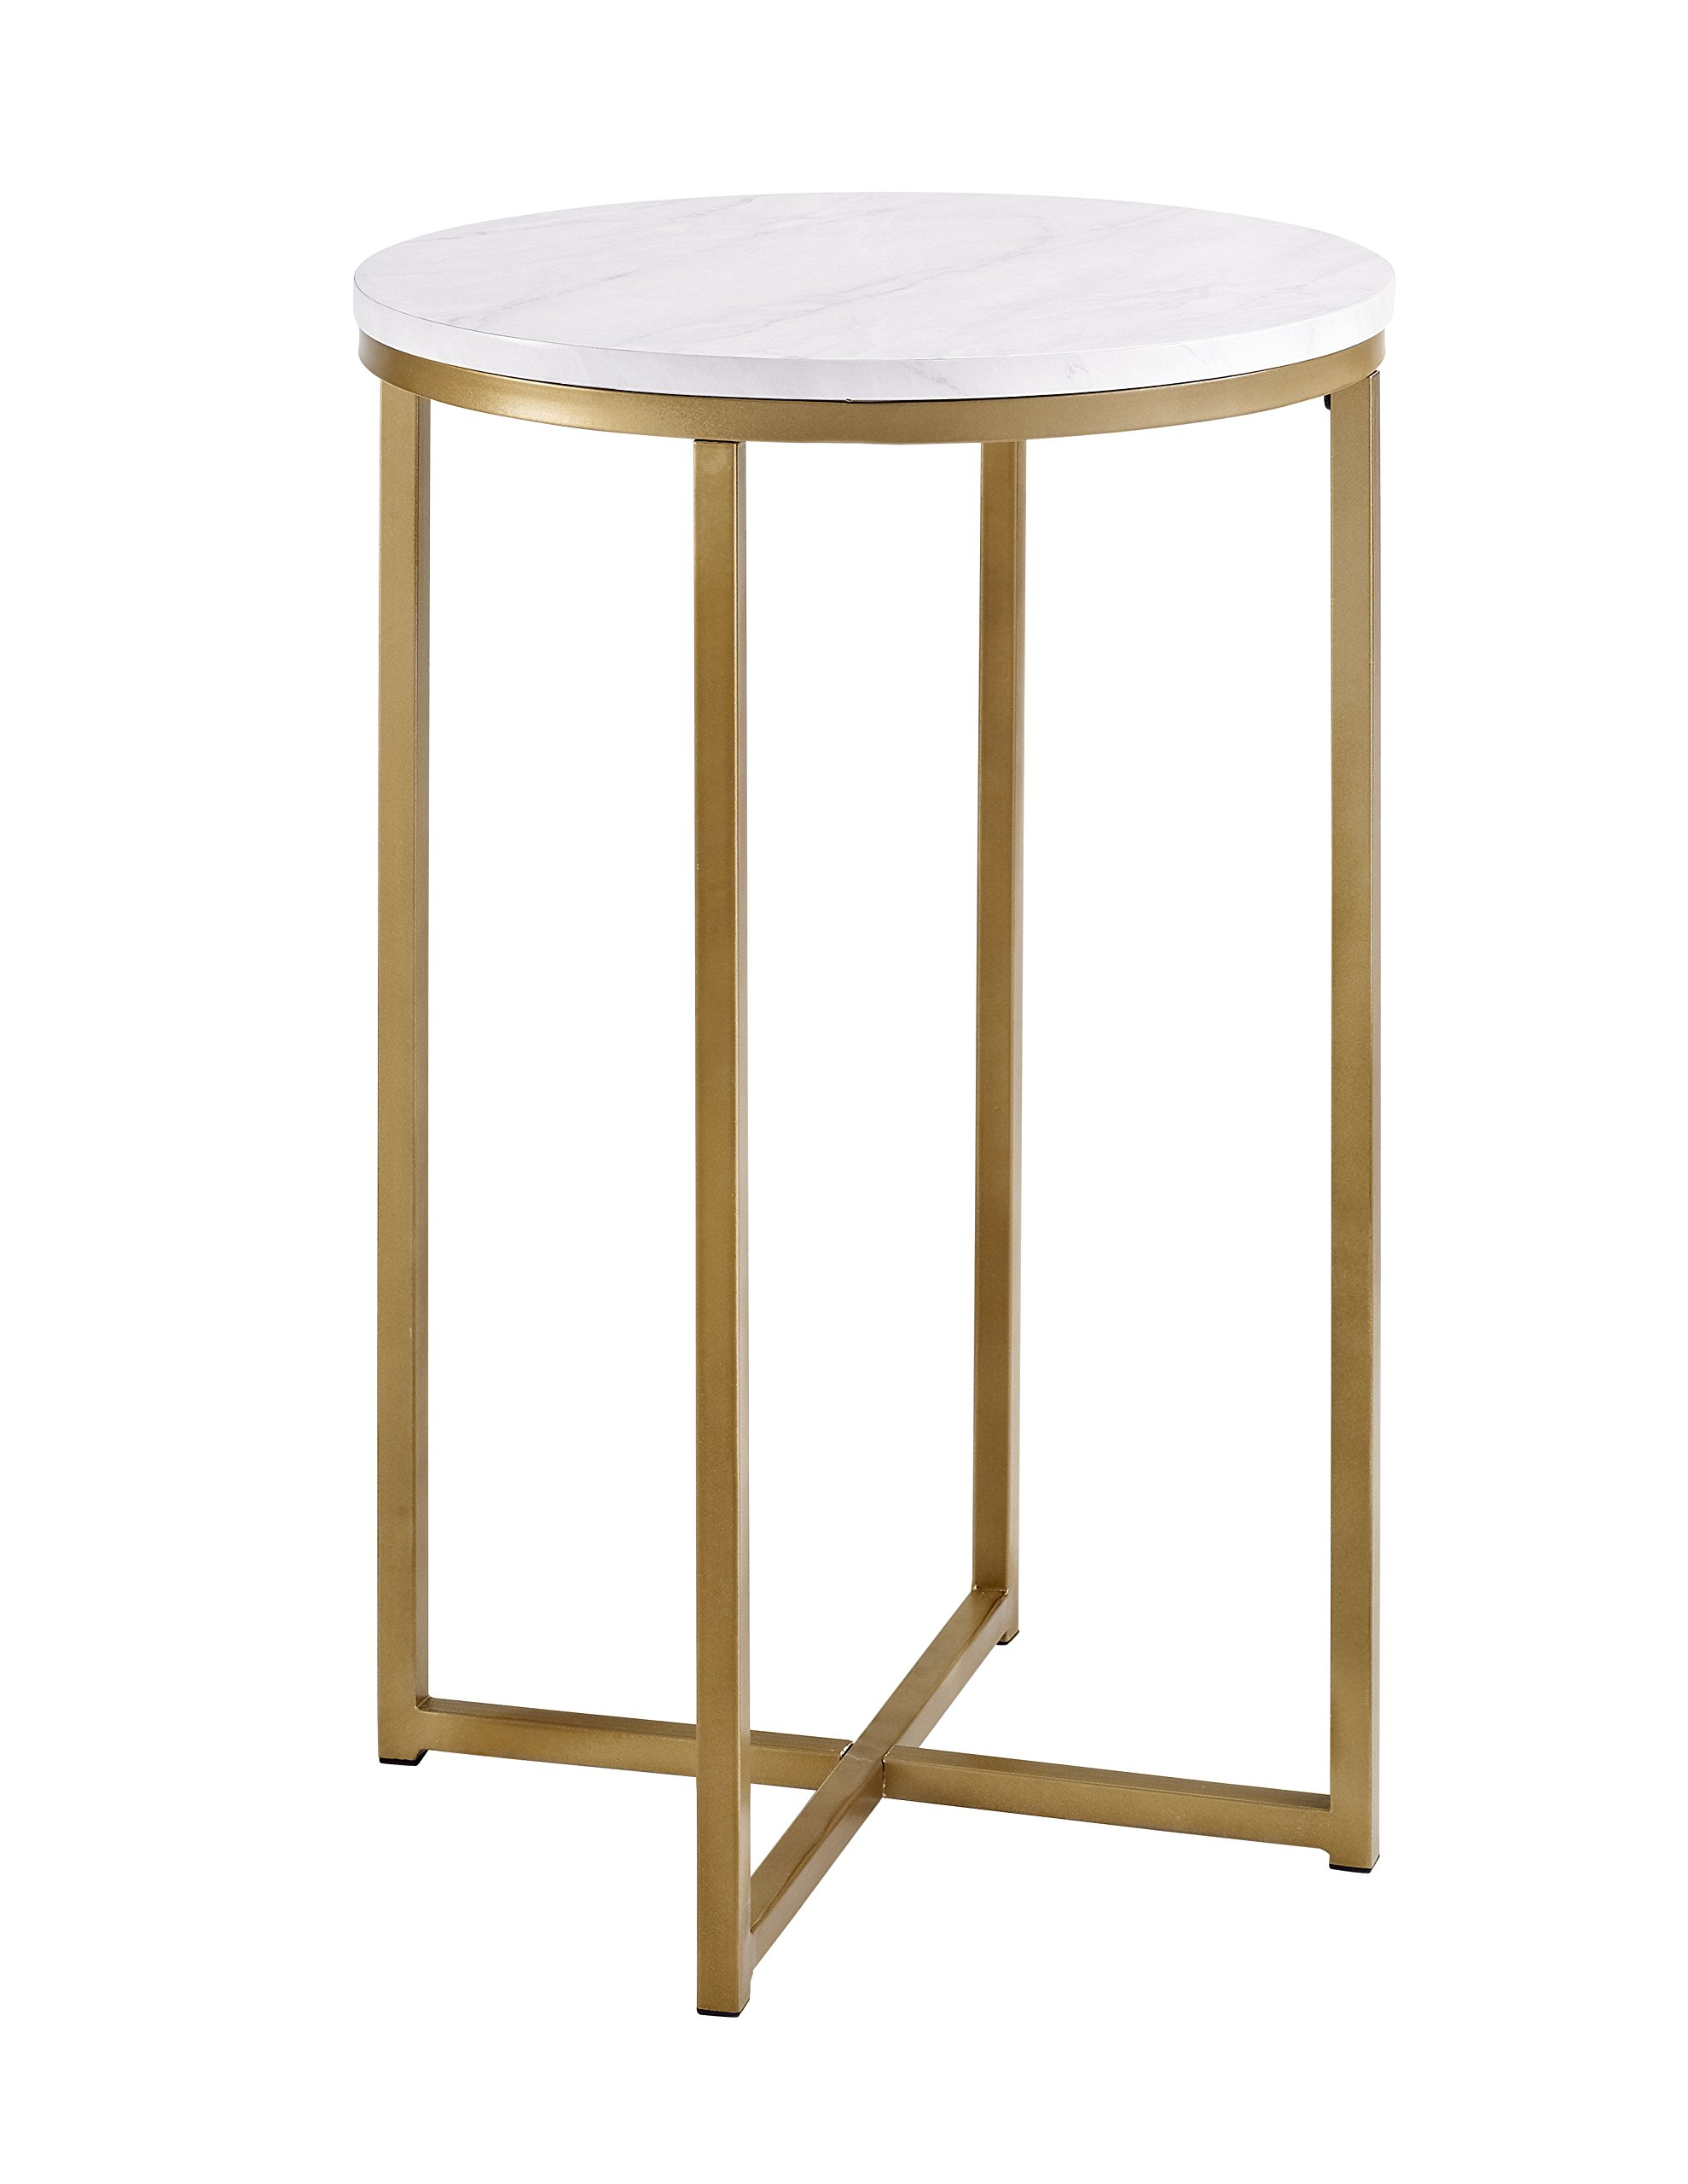 We Furniture AZF16ALSTMGD Modern Round Side End Table, Faux Marble/Gold by WE Furniture